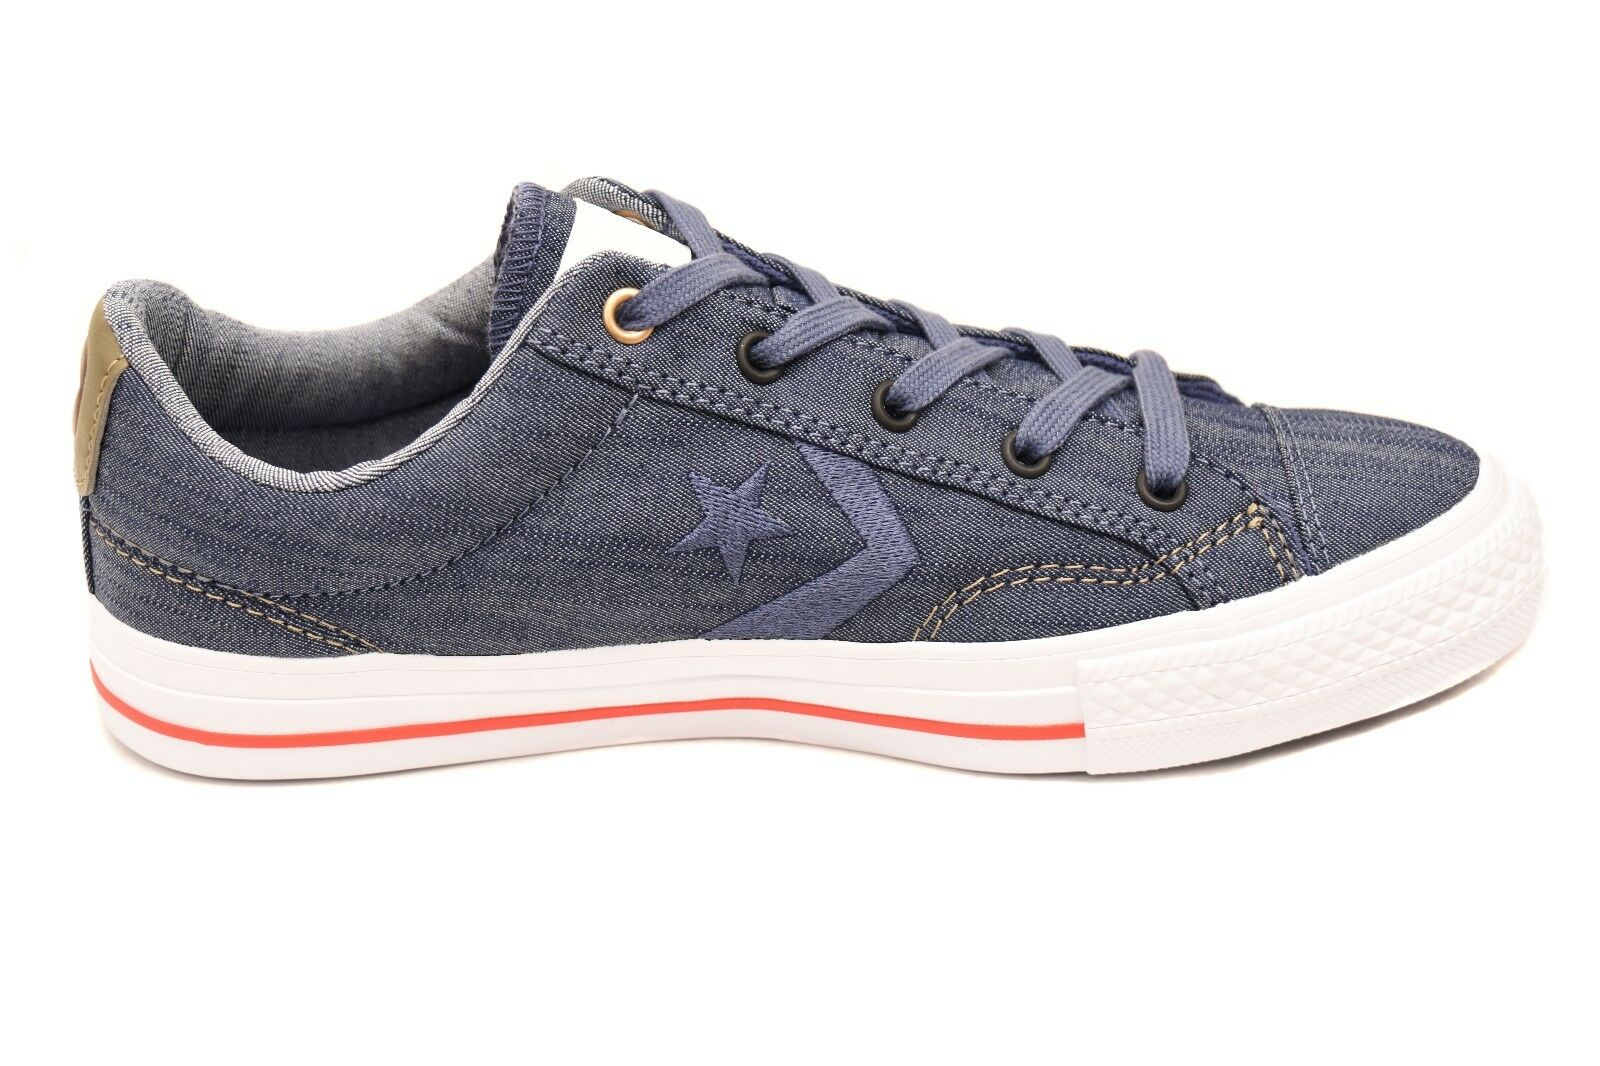 Converse Unisex Star Player 151308C Sneakers Navy Size UK 6 RRP £64 BCF72